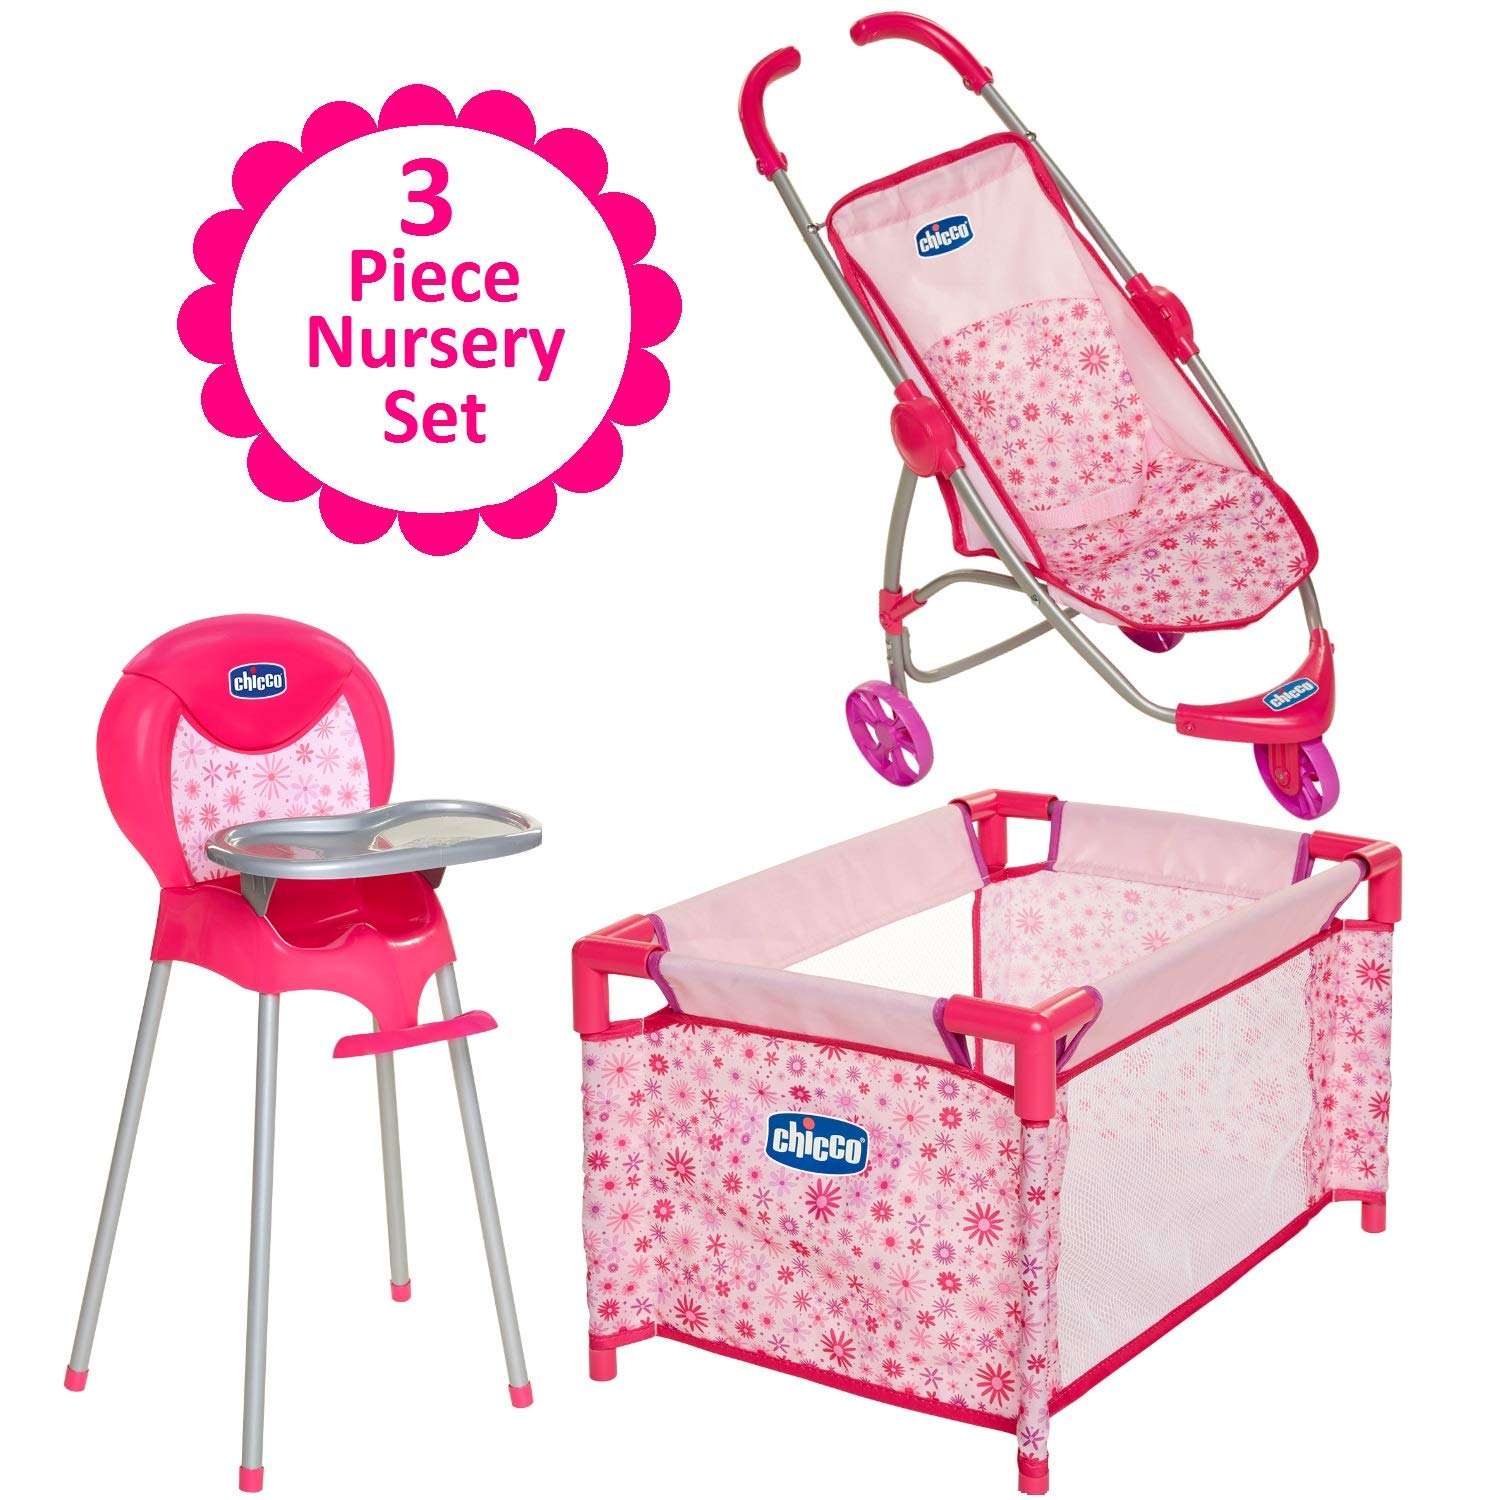 Baby Doll Furniture Gift Set, For Up To 18-Inch Baby Dolls, 3 Piece Mega Baby Doll Play Set, Baby Doll Stroller, Baby Doll High Chair and Baby Doll Playard Included, For 3 Year Old Girls and Up by Chicco